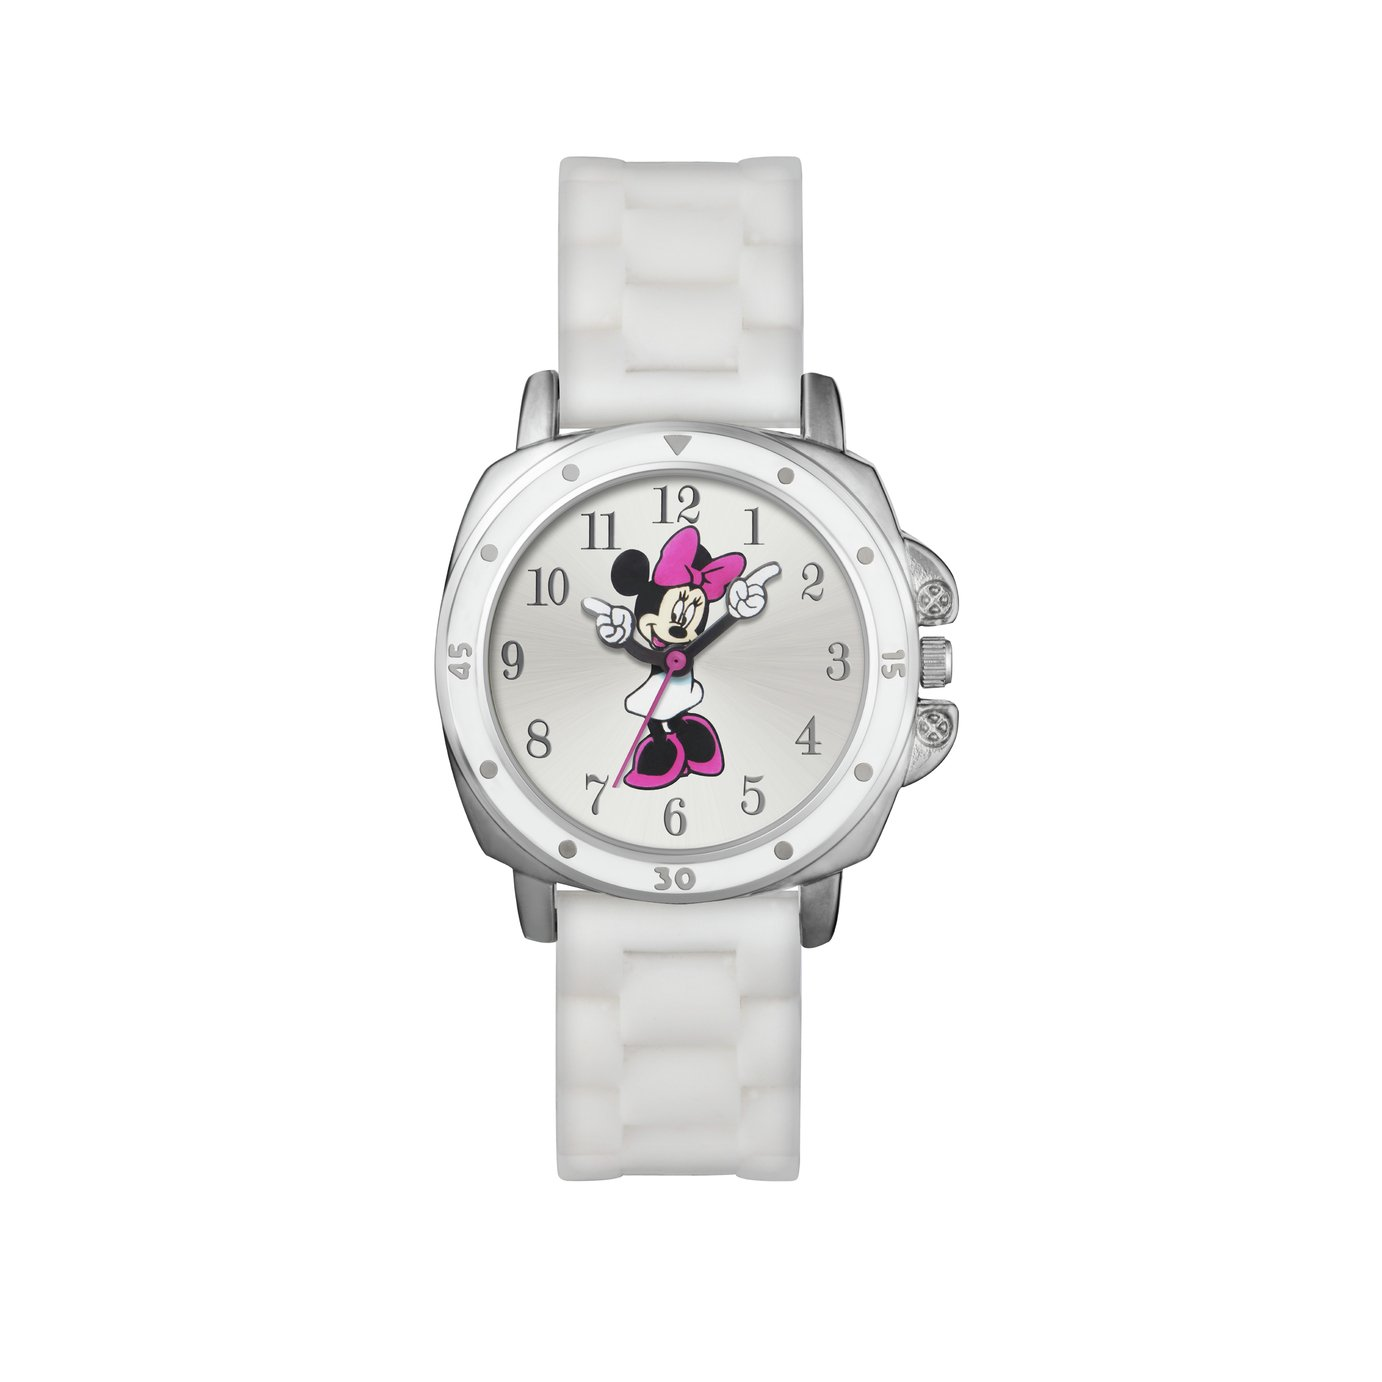 Disney Minnie Mouse White Dial and Silicone Strap Watch from Disney